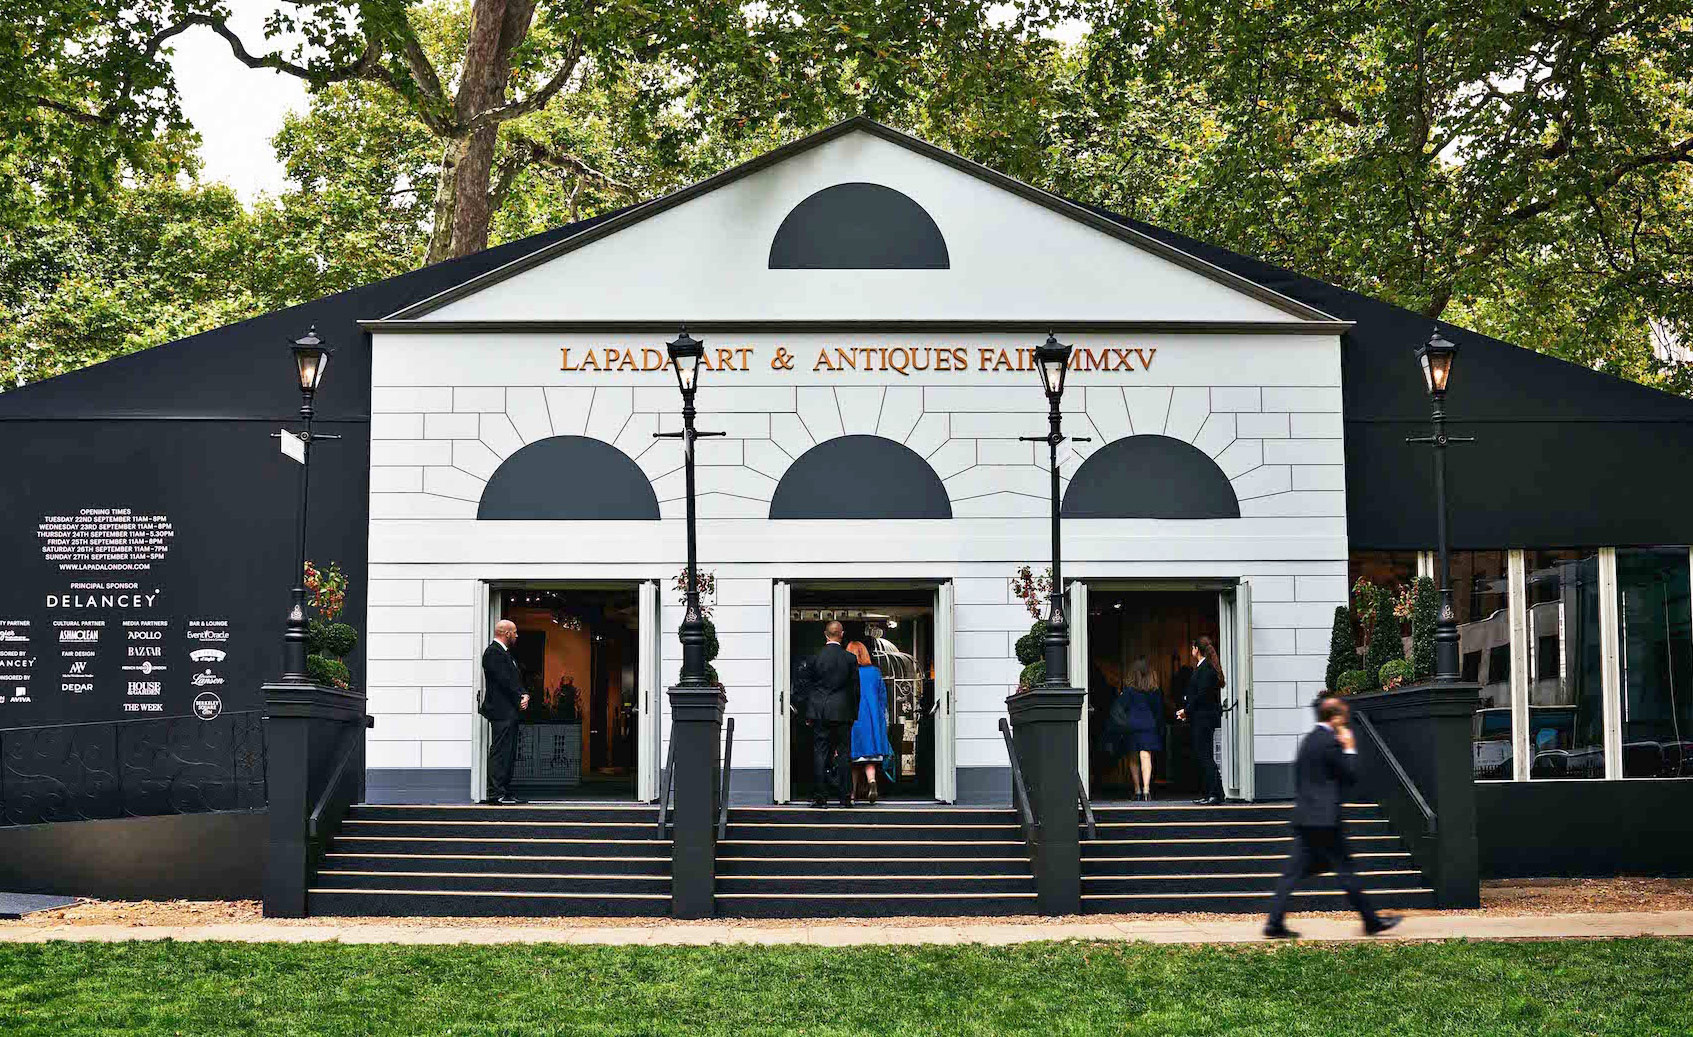 The 2016 LAPADA Arts And Antiques Fair To Open In London 3